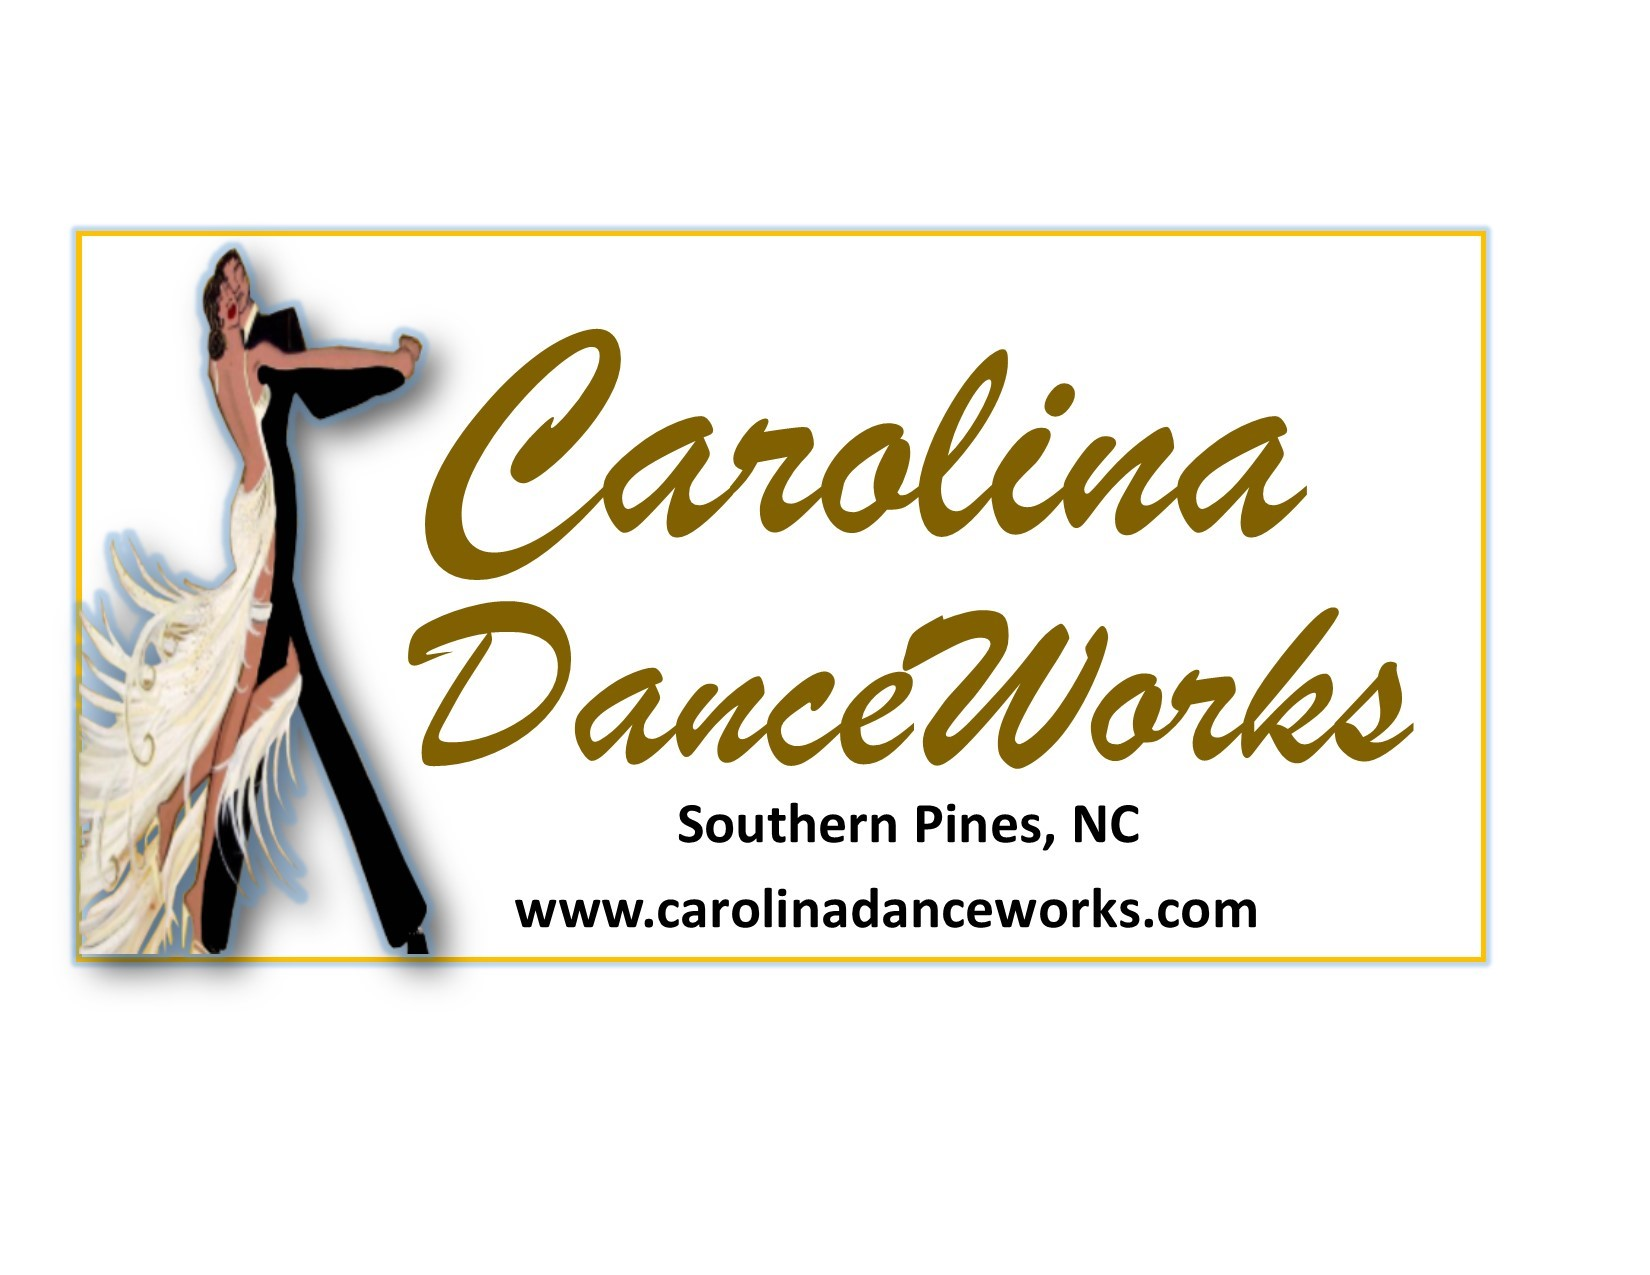 Carolina Dance Works